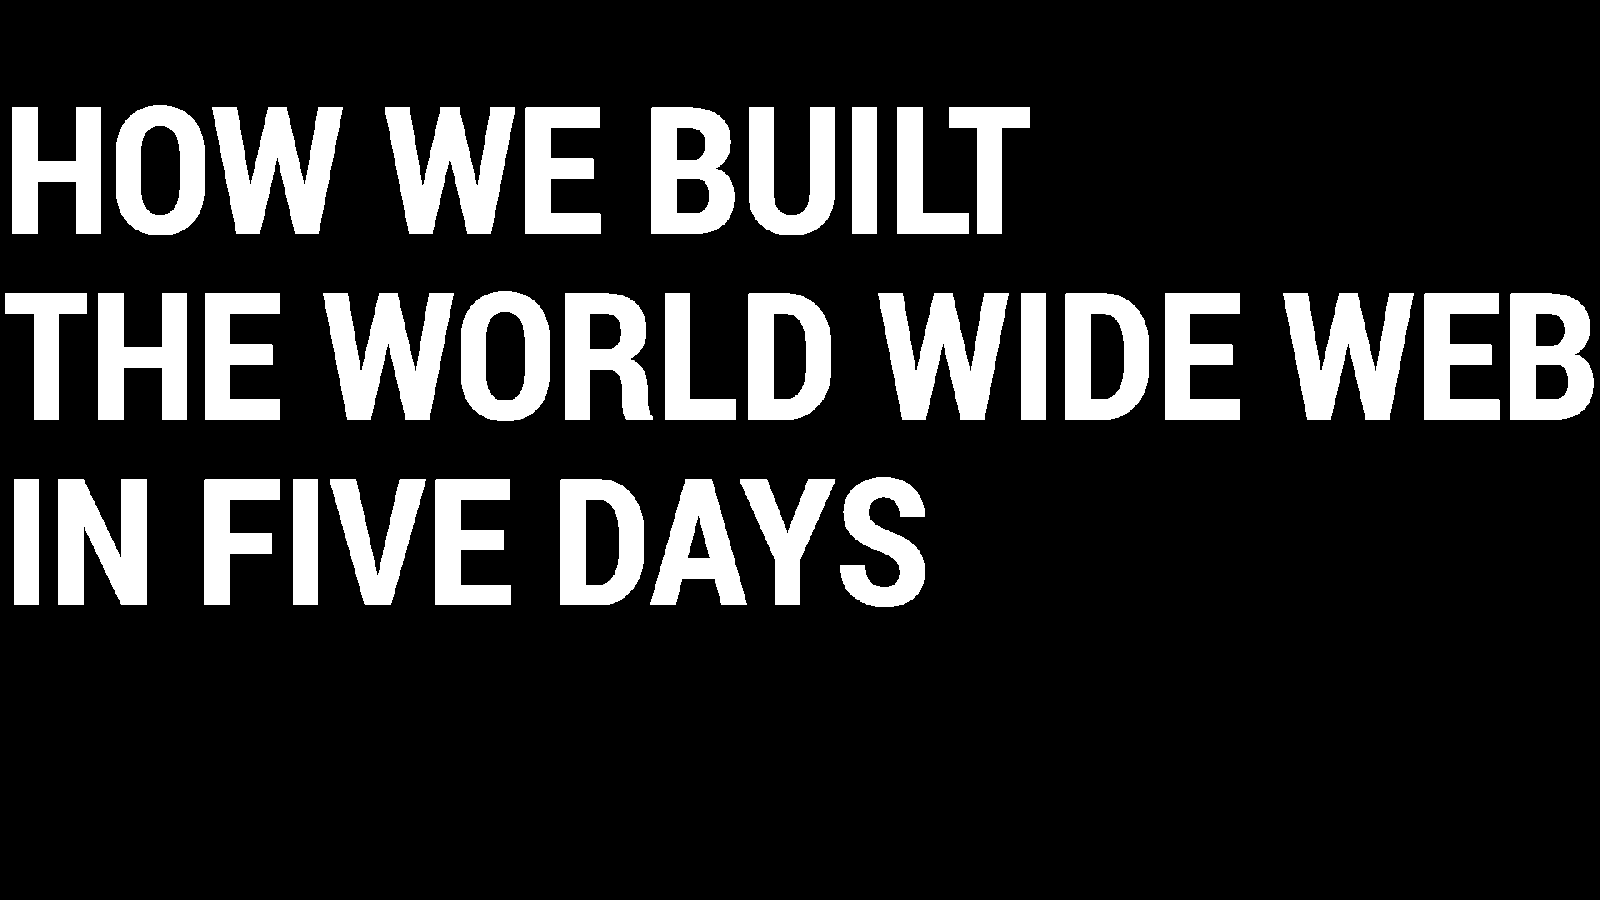 How We Built The World Wide Web In Five Days